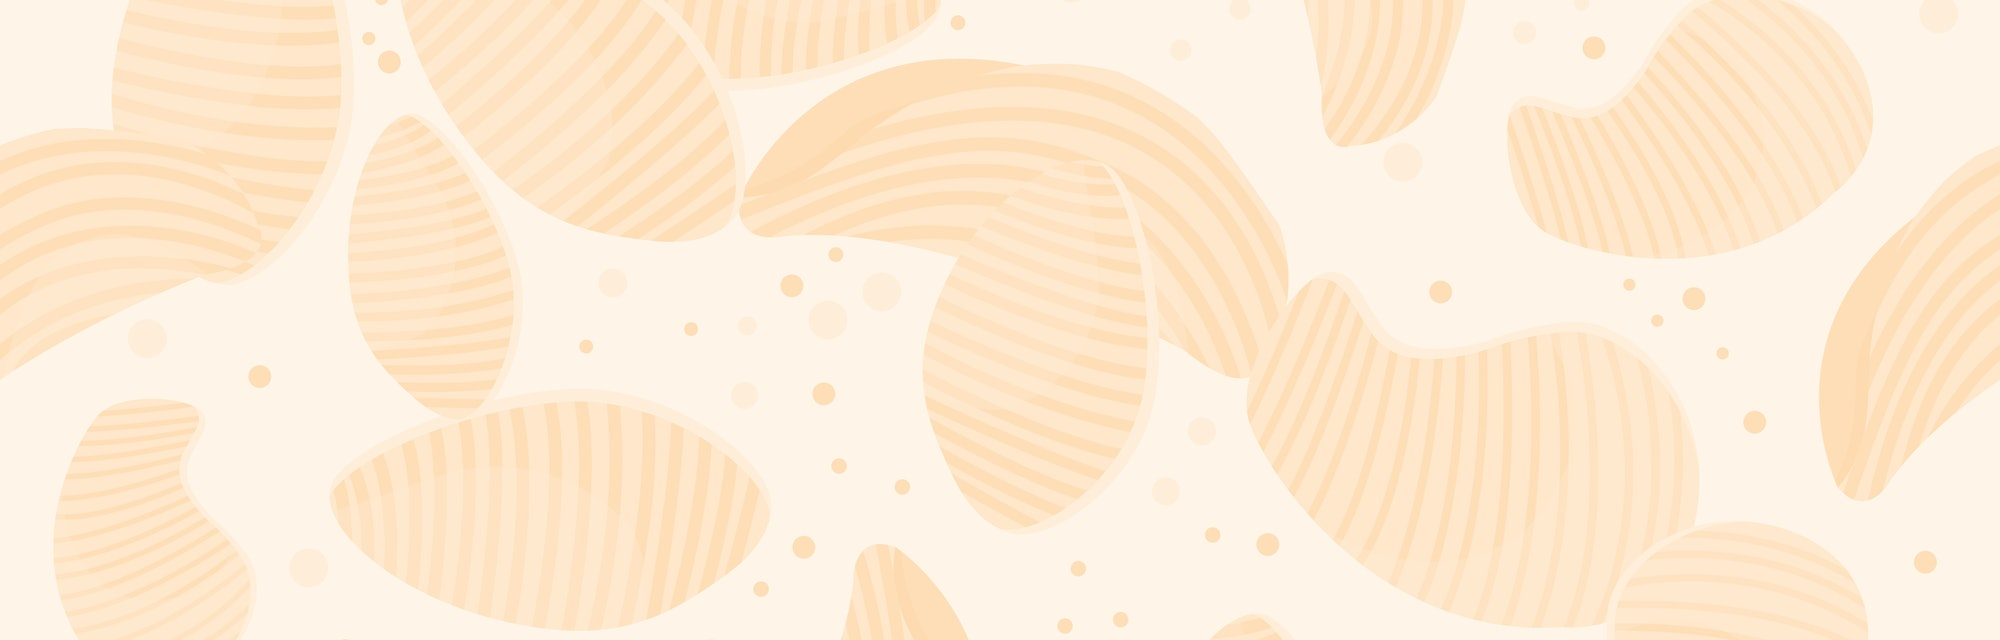 round potato chips seamless pattern